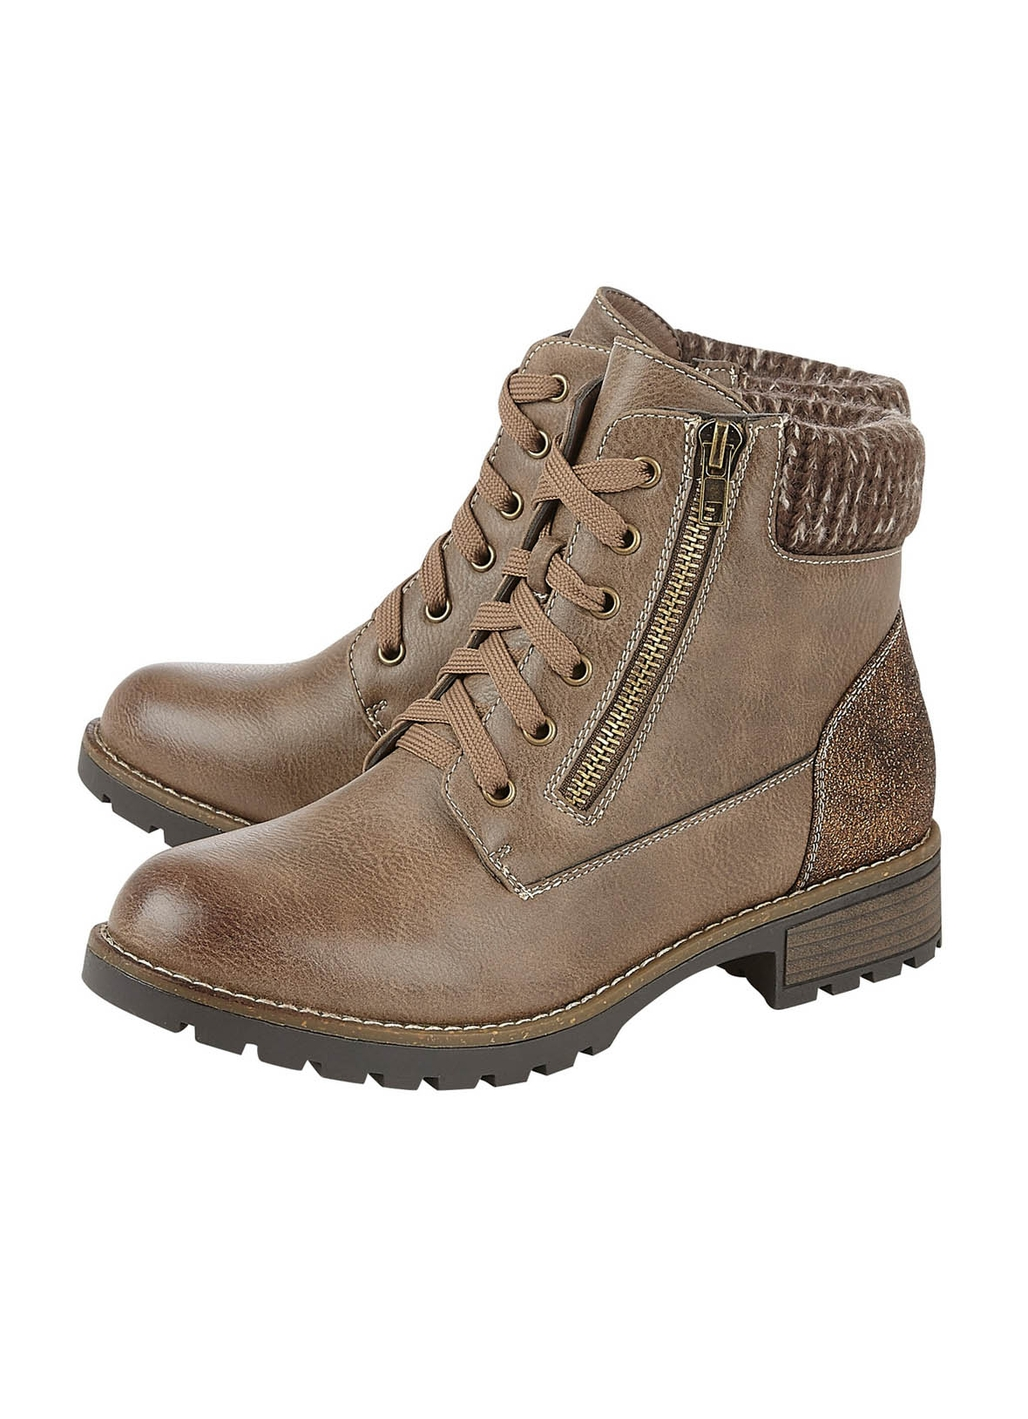 Lotus Emmeline Ankle Boots in Taupe